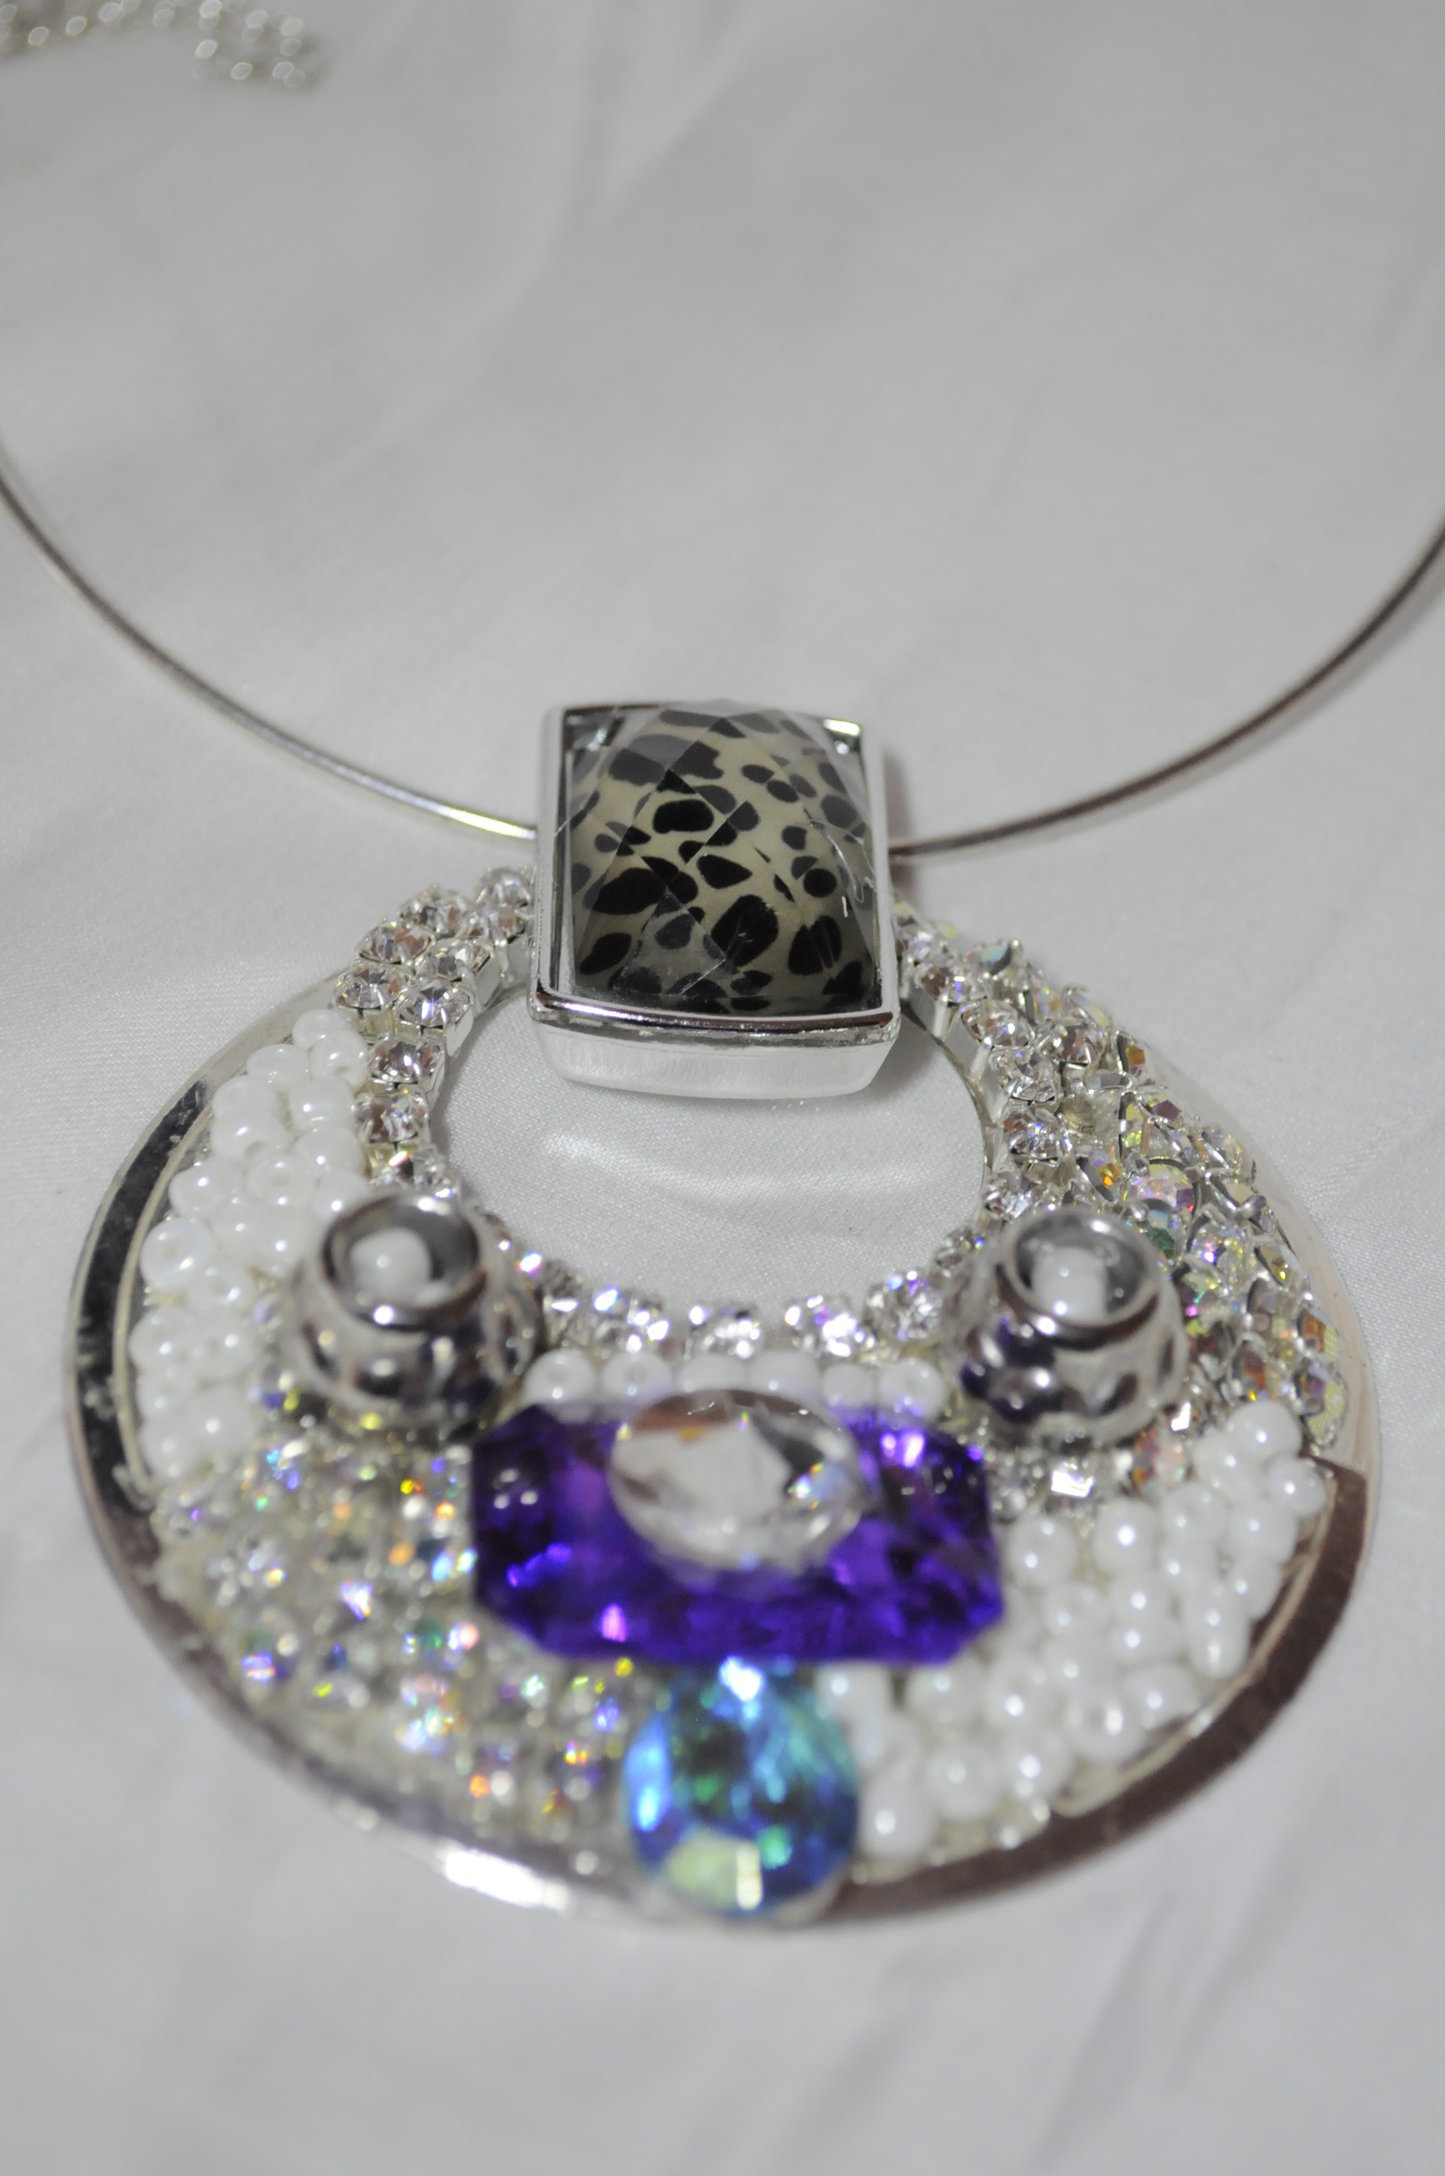 LARGE ROUND ART DECO necklace with silver attachments, pearls, and stones.